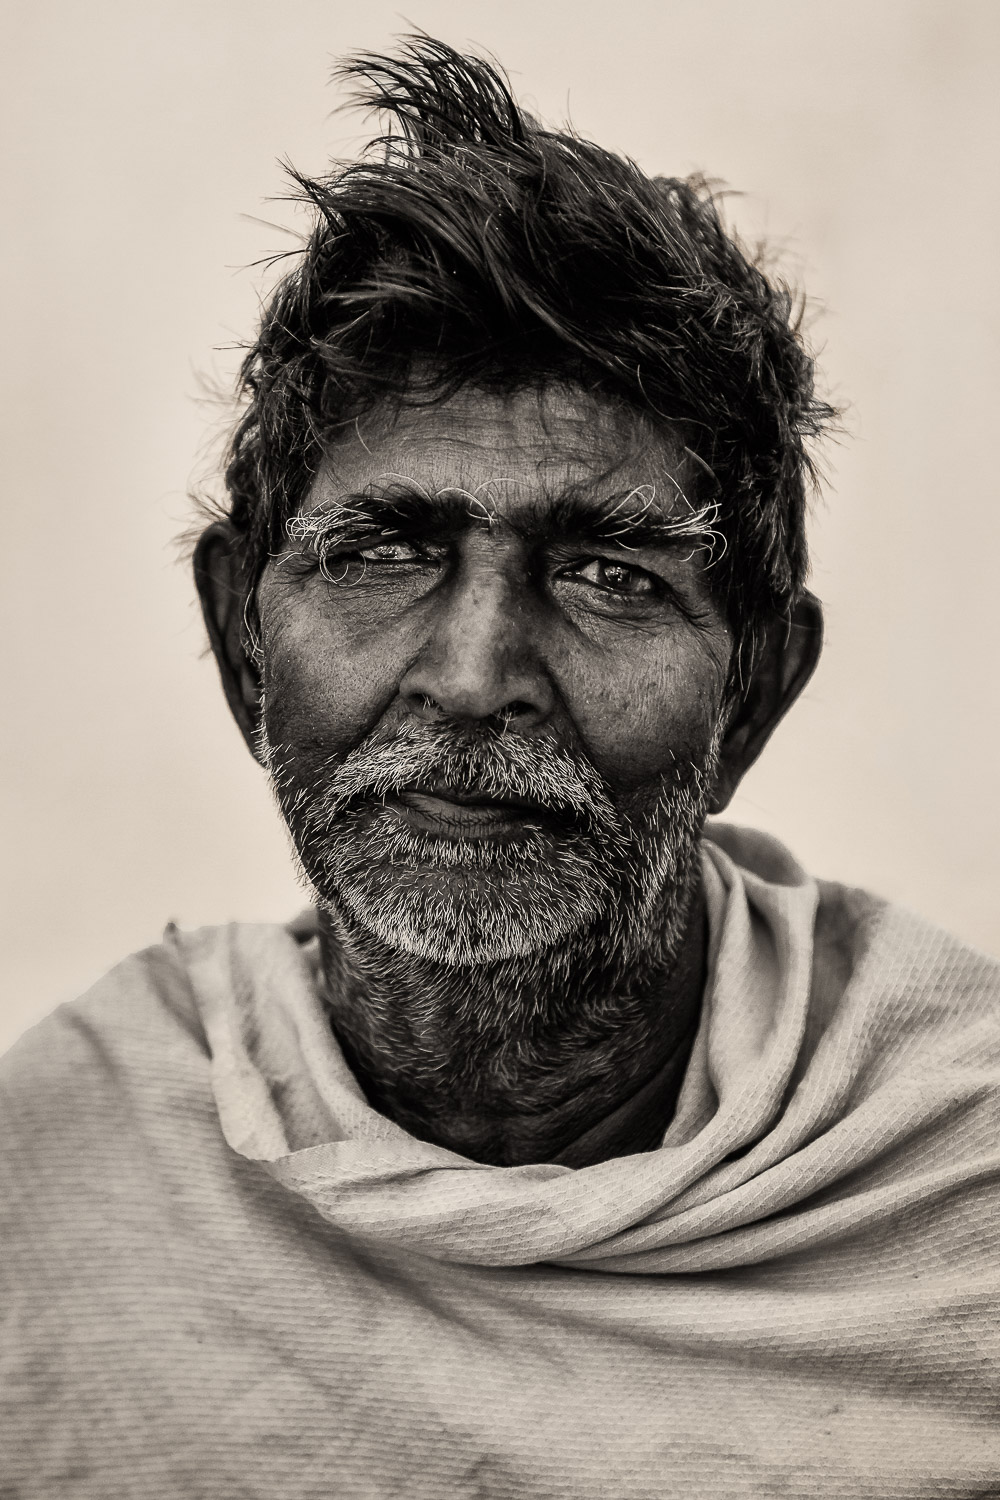 The look of    a life very much lived    in the eyes of this    dignified man    in    Chennai, India   .